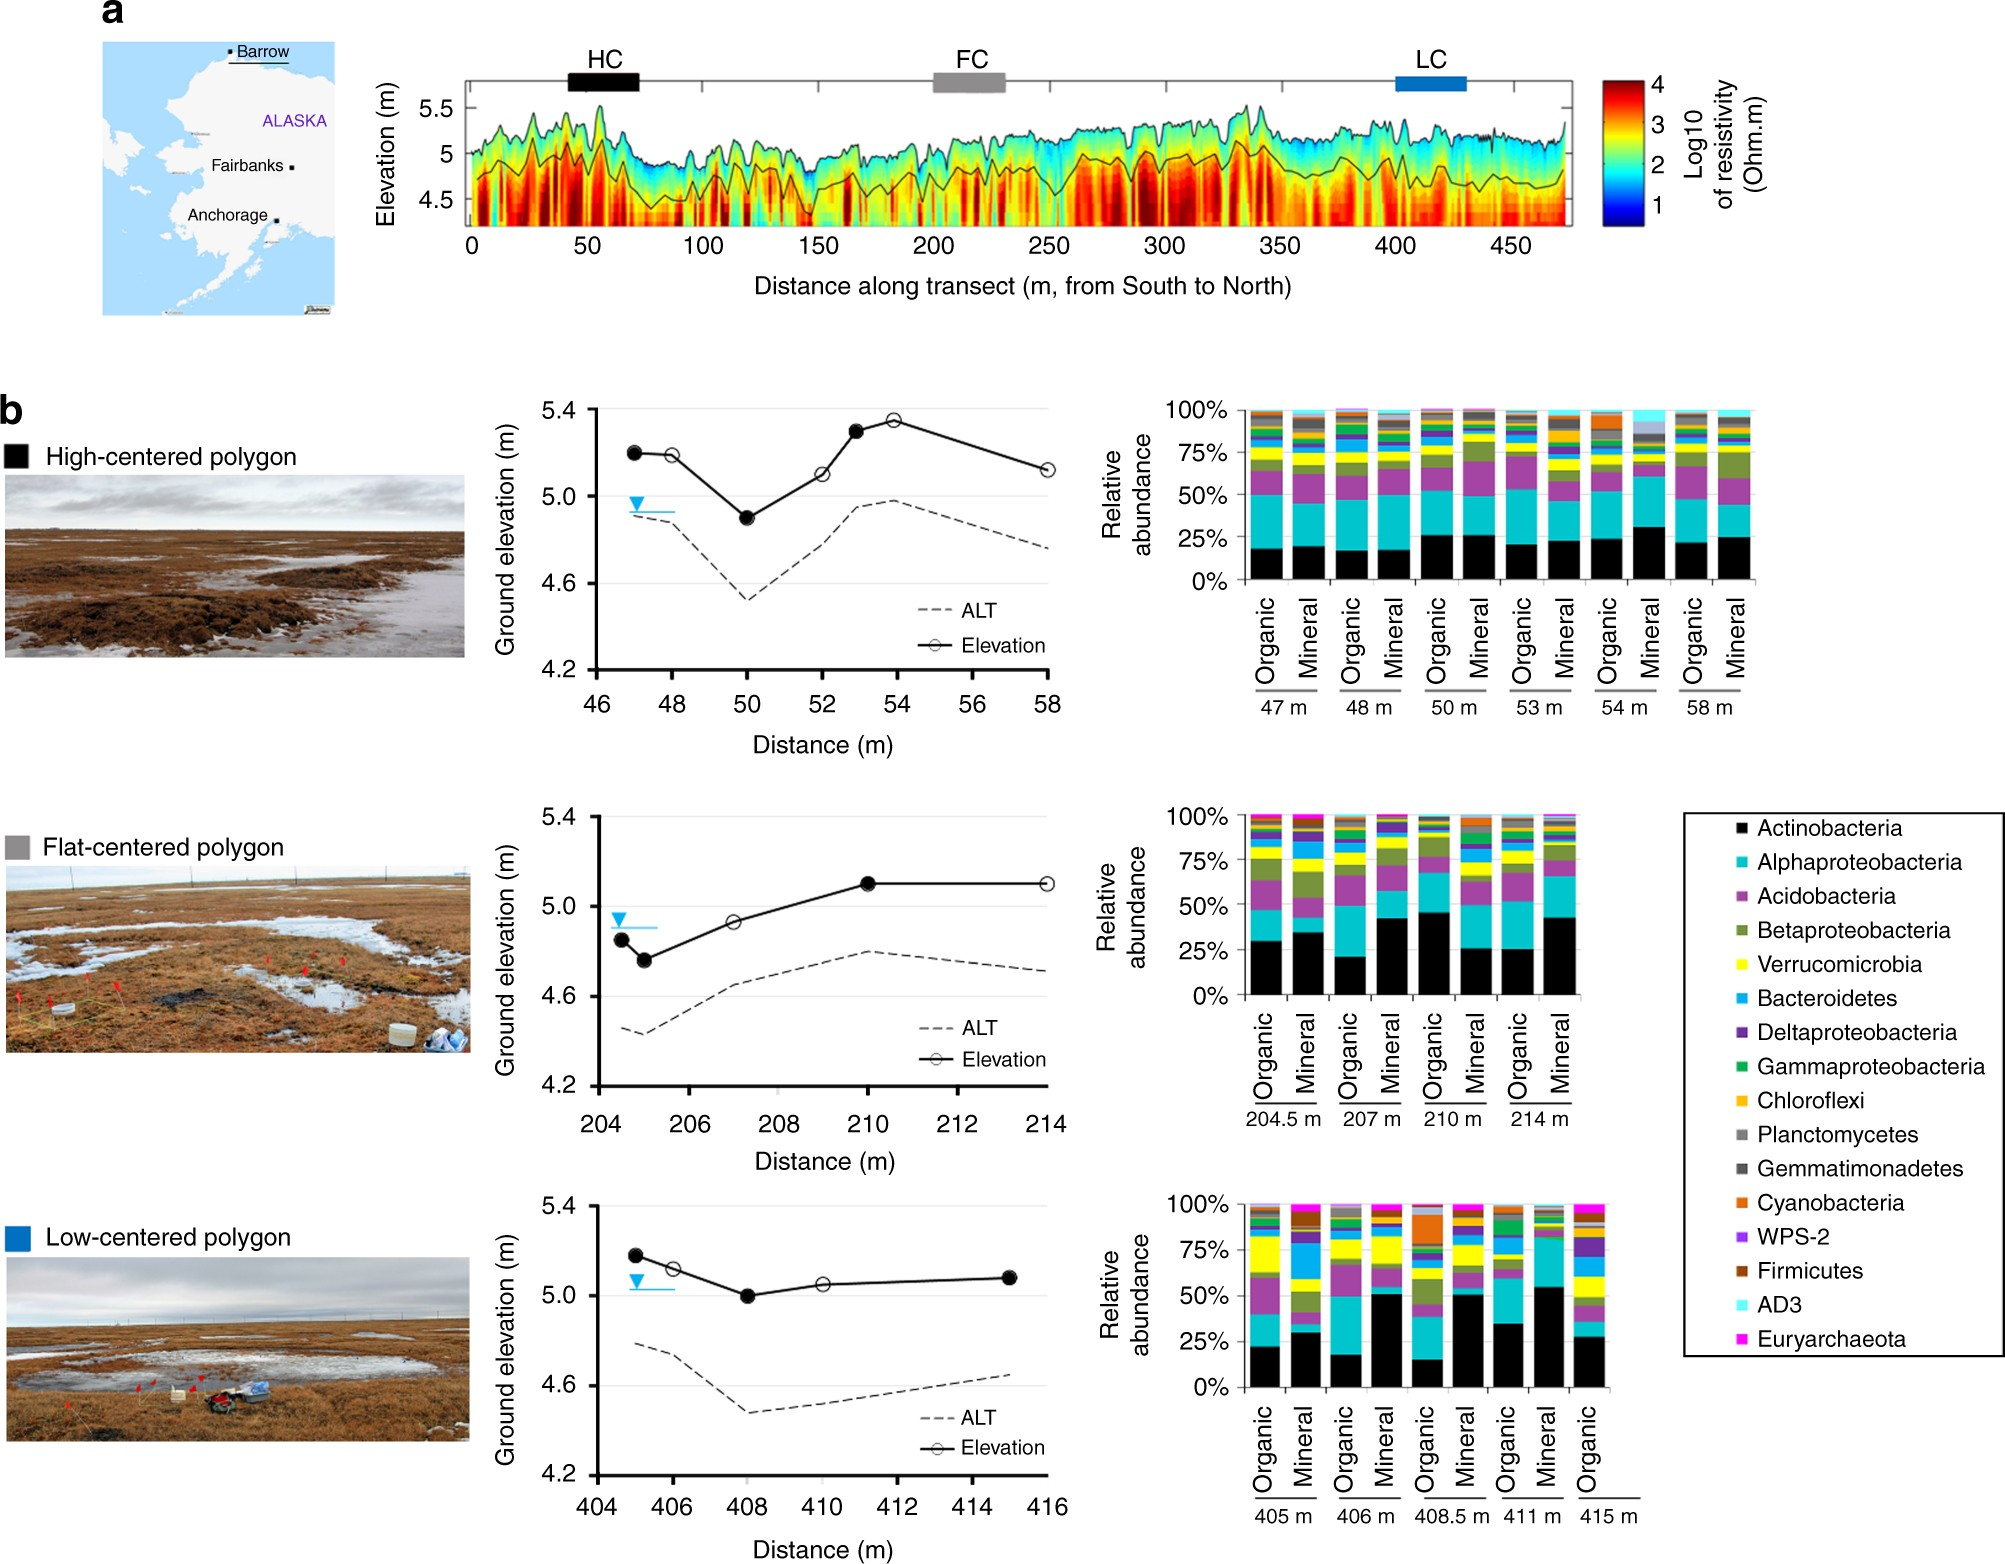 Landscape topography structures the soil microbiome in arctic landscape topography structures the soil microbiome in arctic polygonal tundra nature communications pooptronica Images